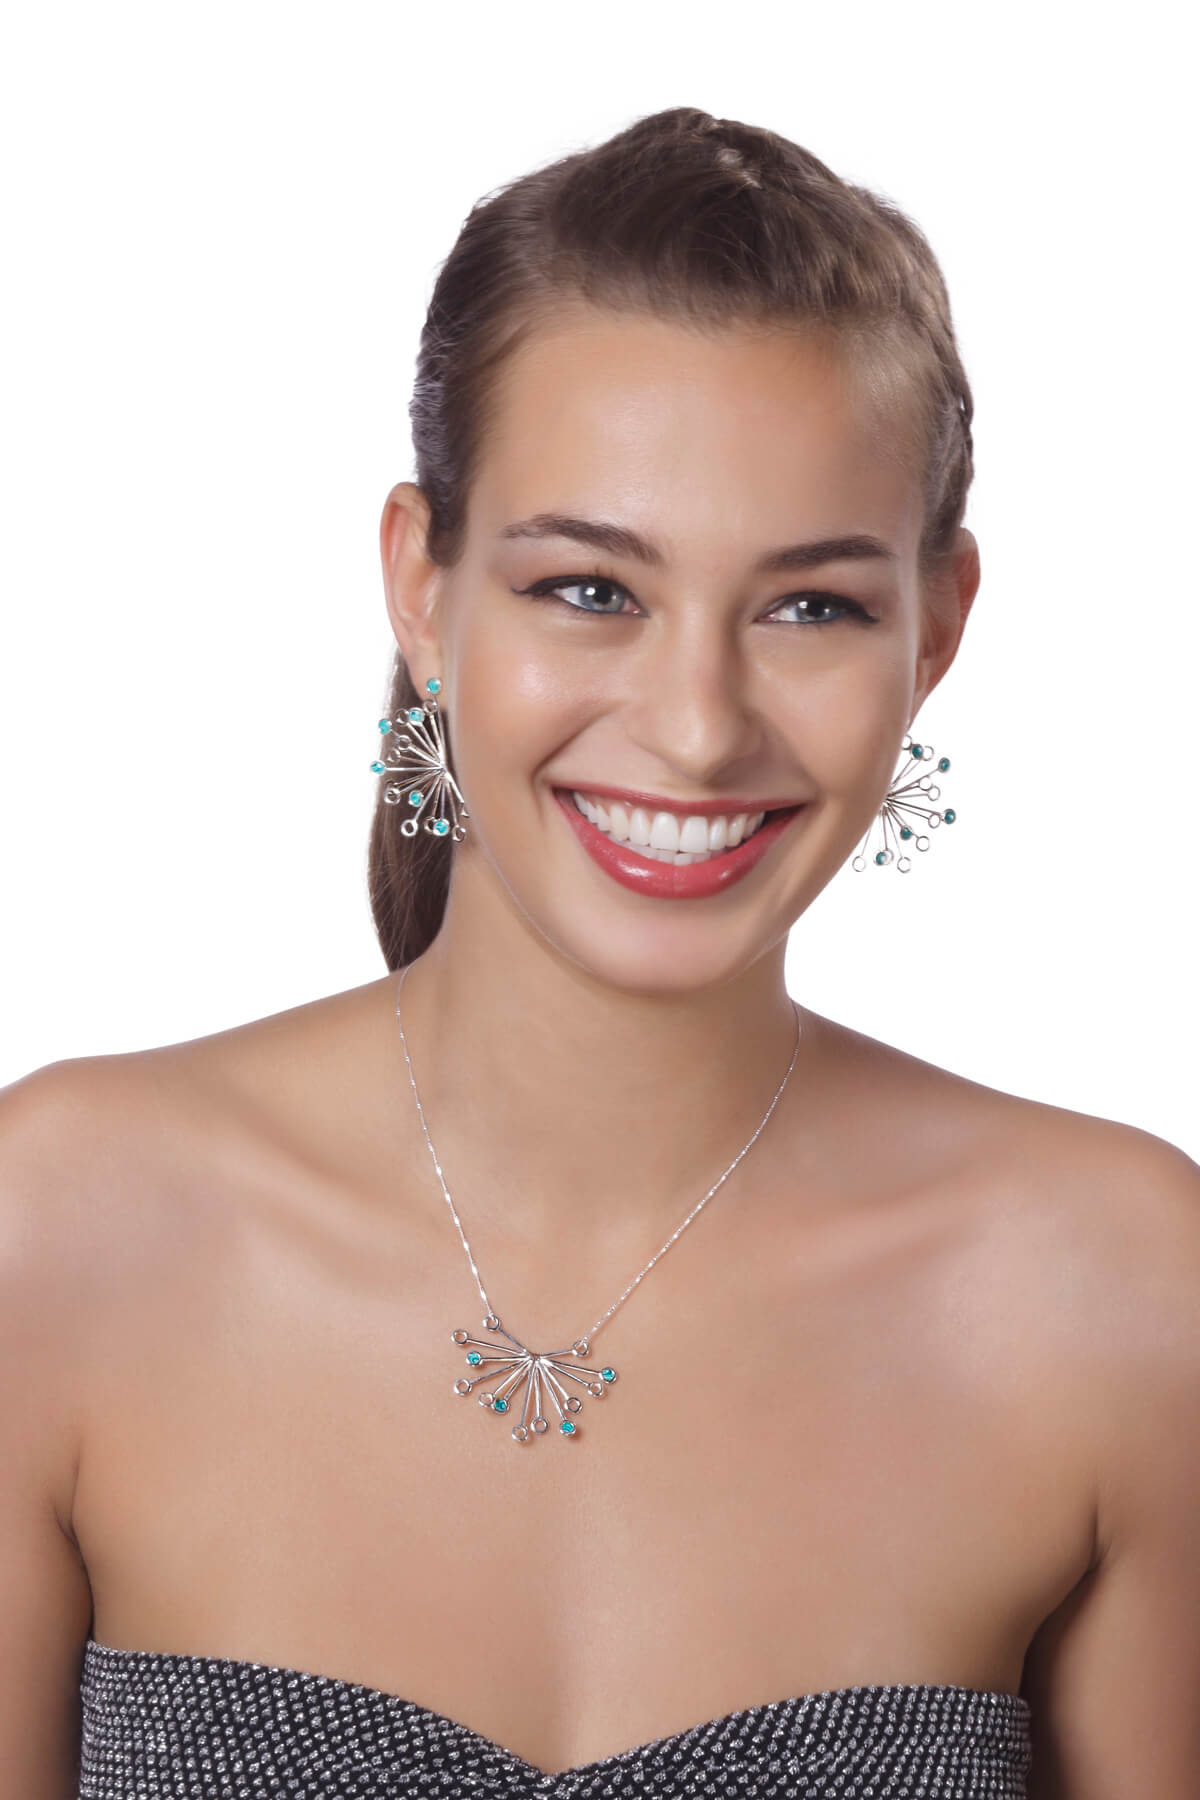 Handmade Silver Senecio Flower Necklace and earrings – Turquoise Pattern